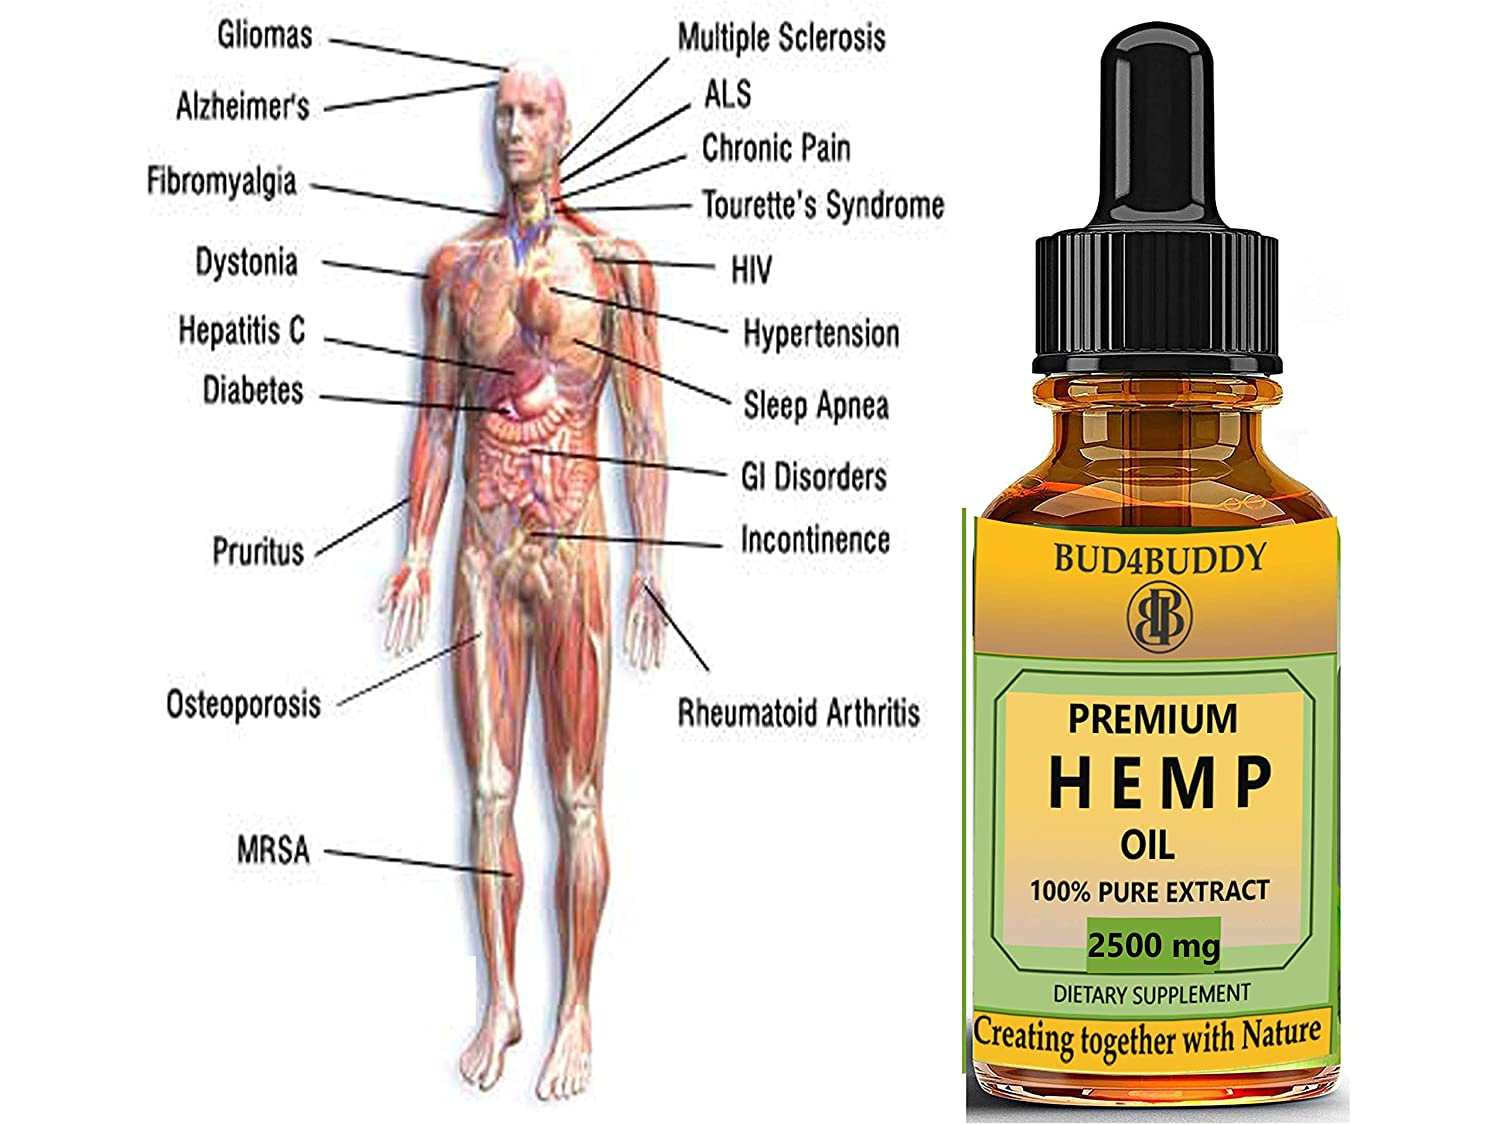 Amazon.com: Hemp Oil Drops 2500mg, 100% Natural Extract, Supports Anti Anxiety and Stress Health, All Natural Dietary Supplement, Rich in Omega 3 and 6 ...